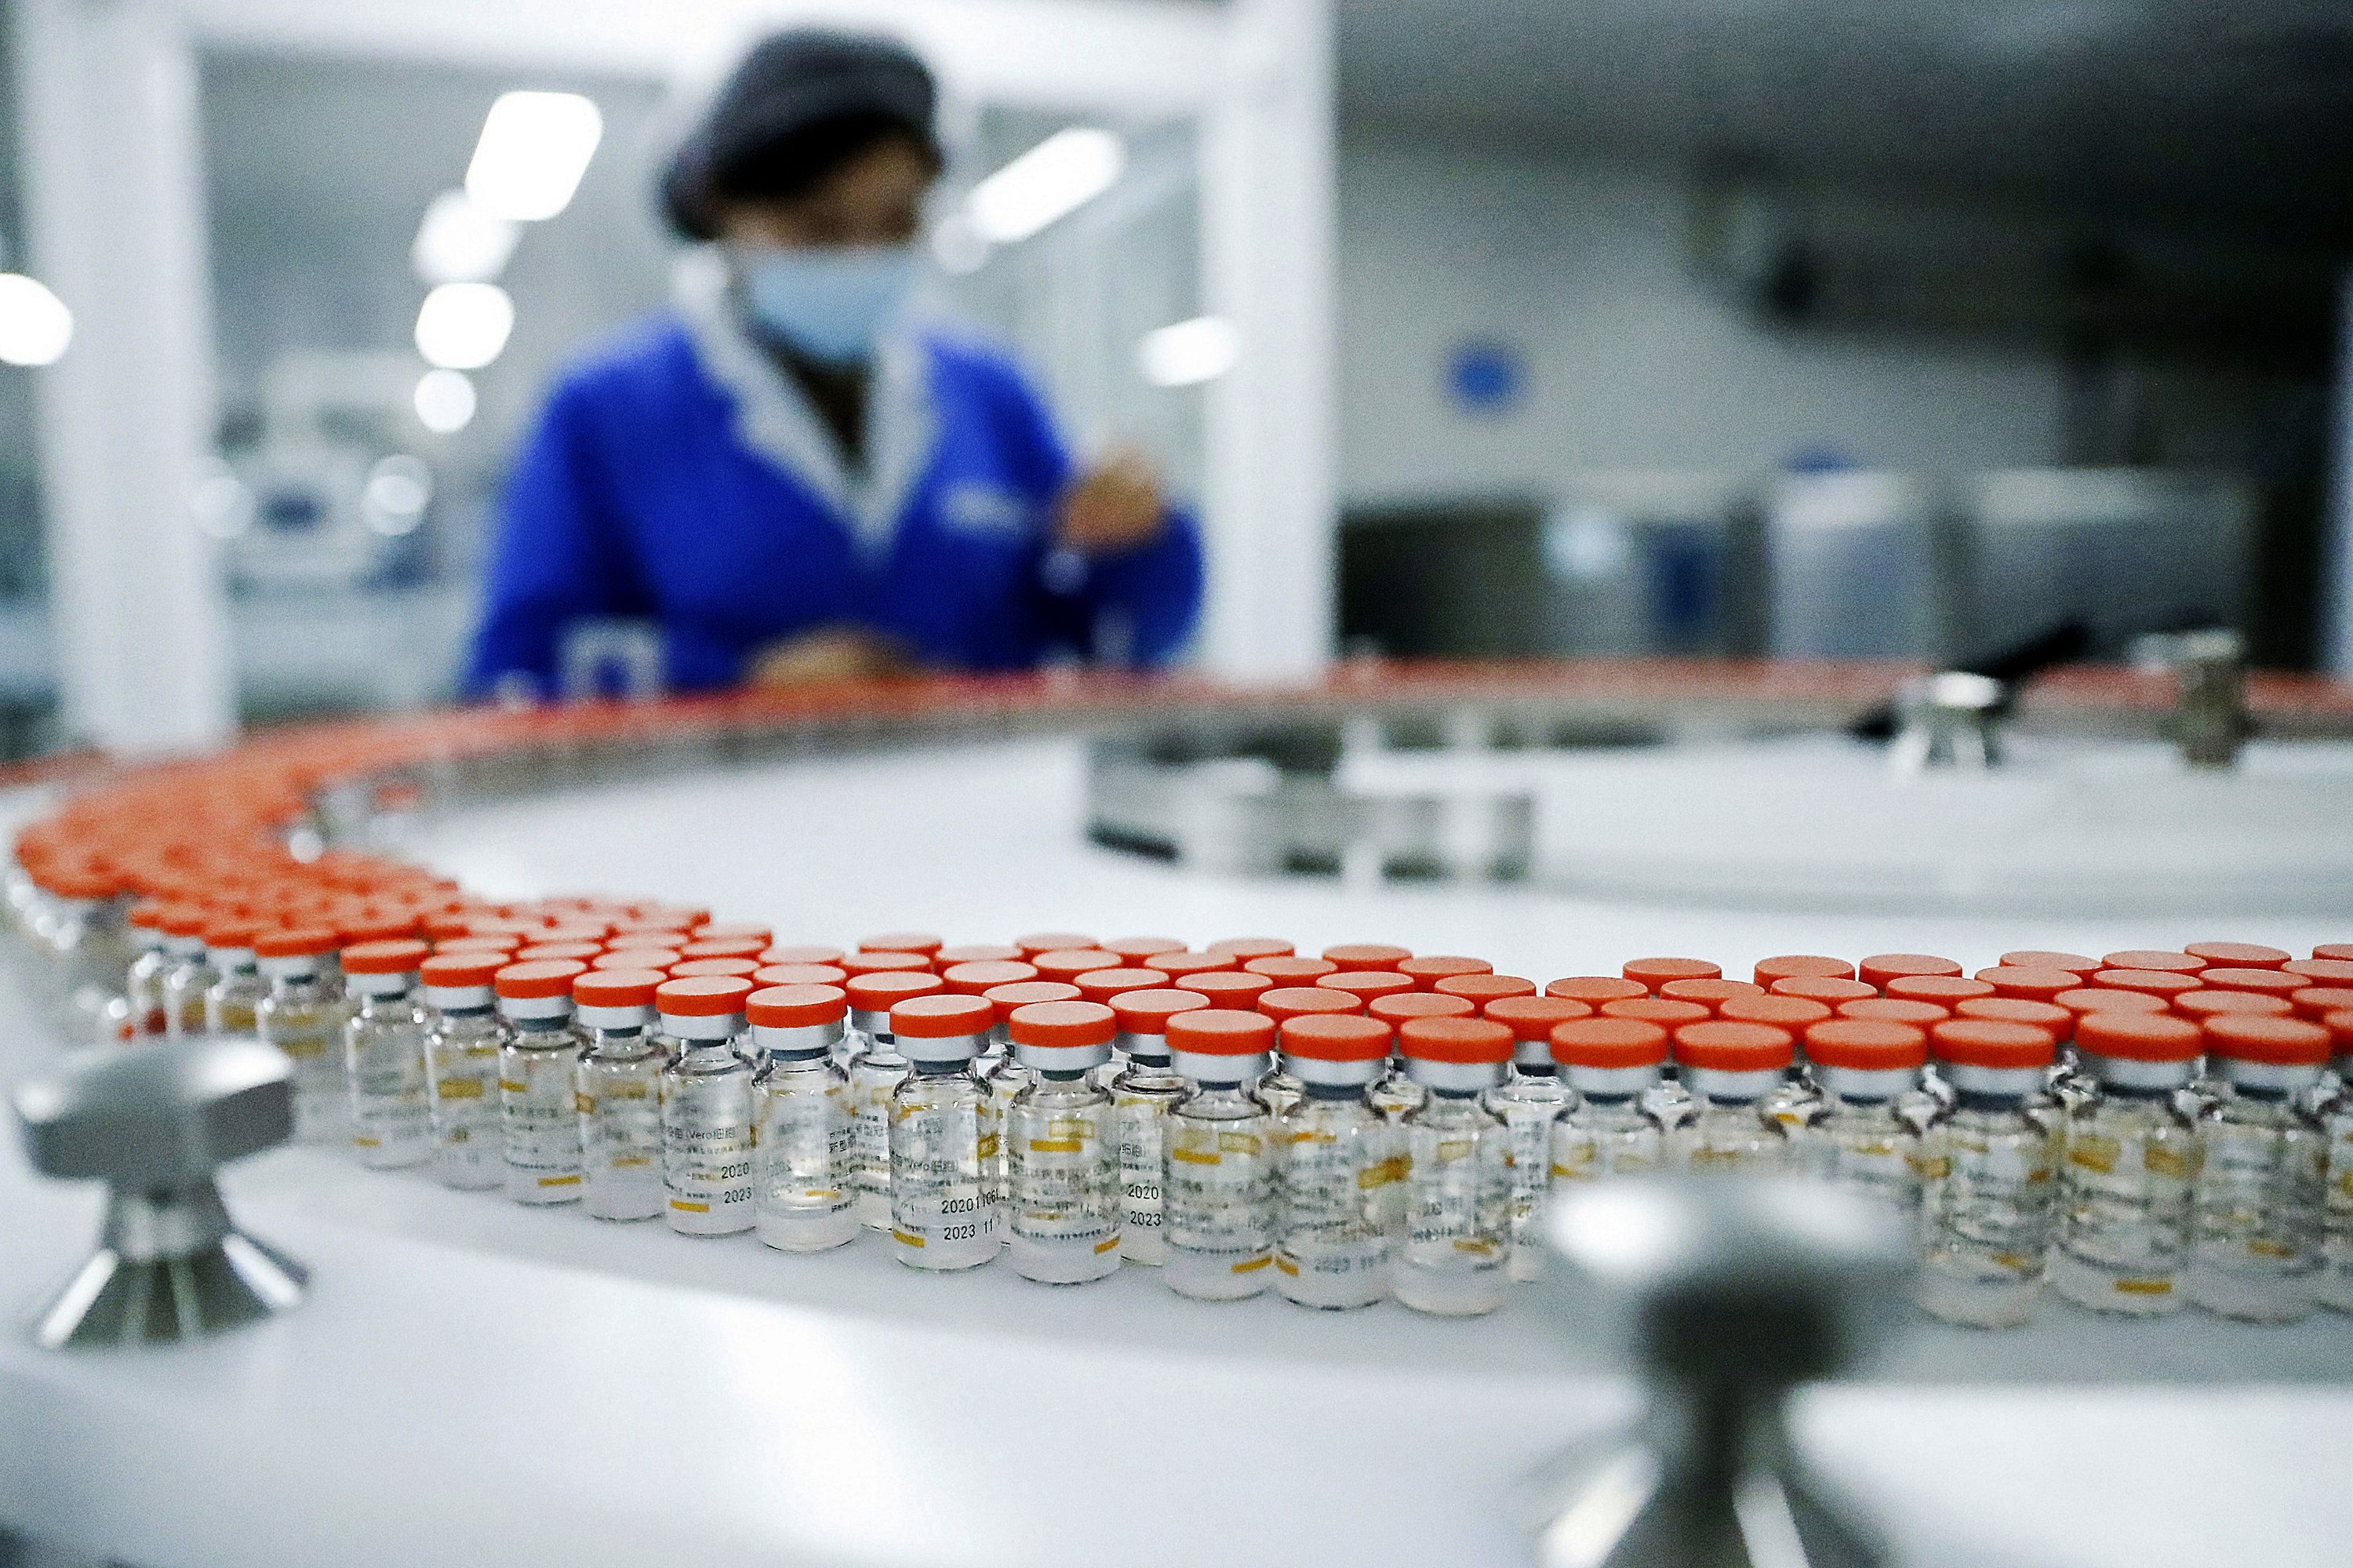 China aims to vaccinate 40 per cent of population by June